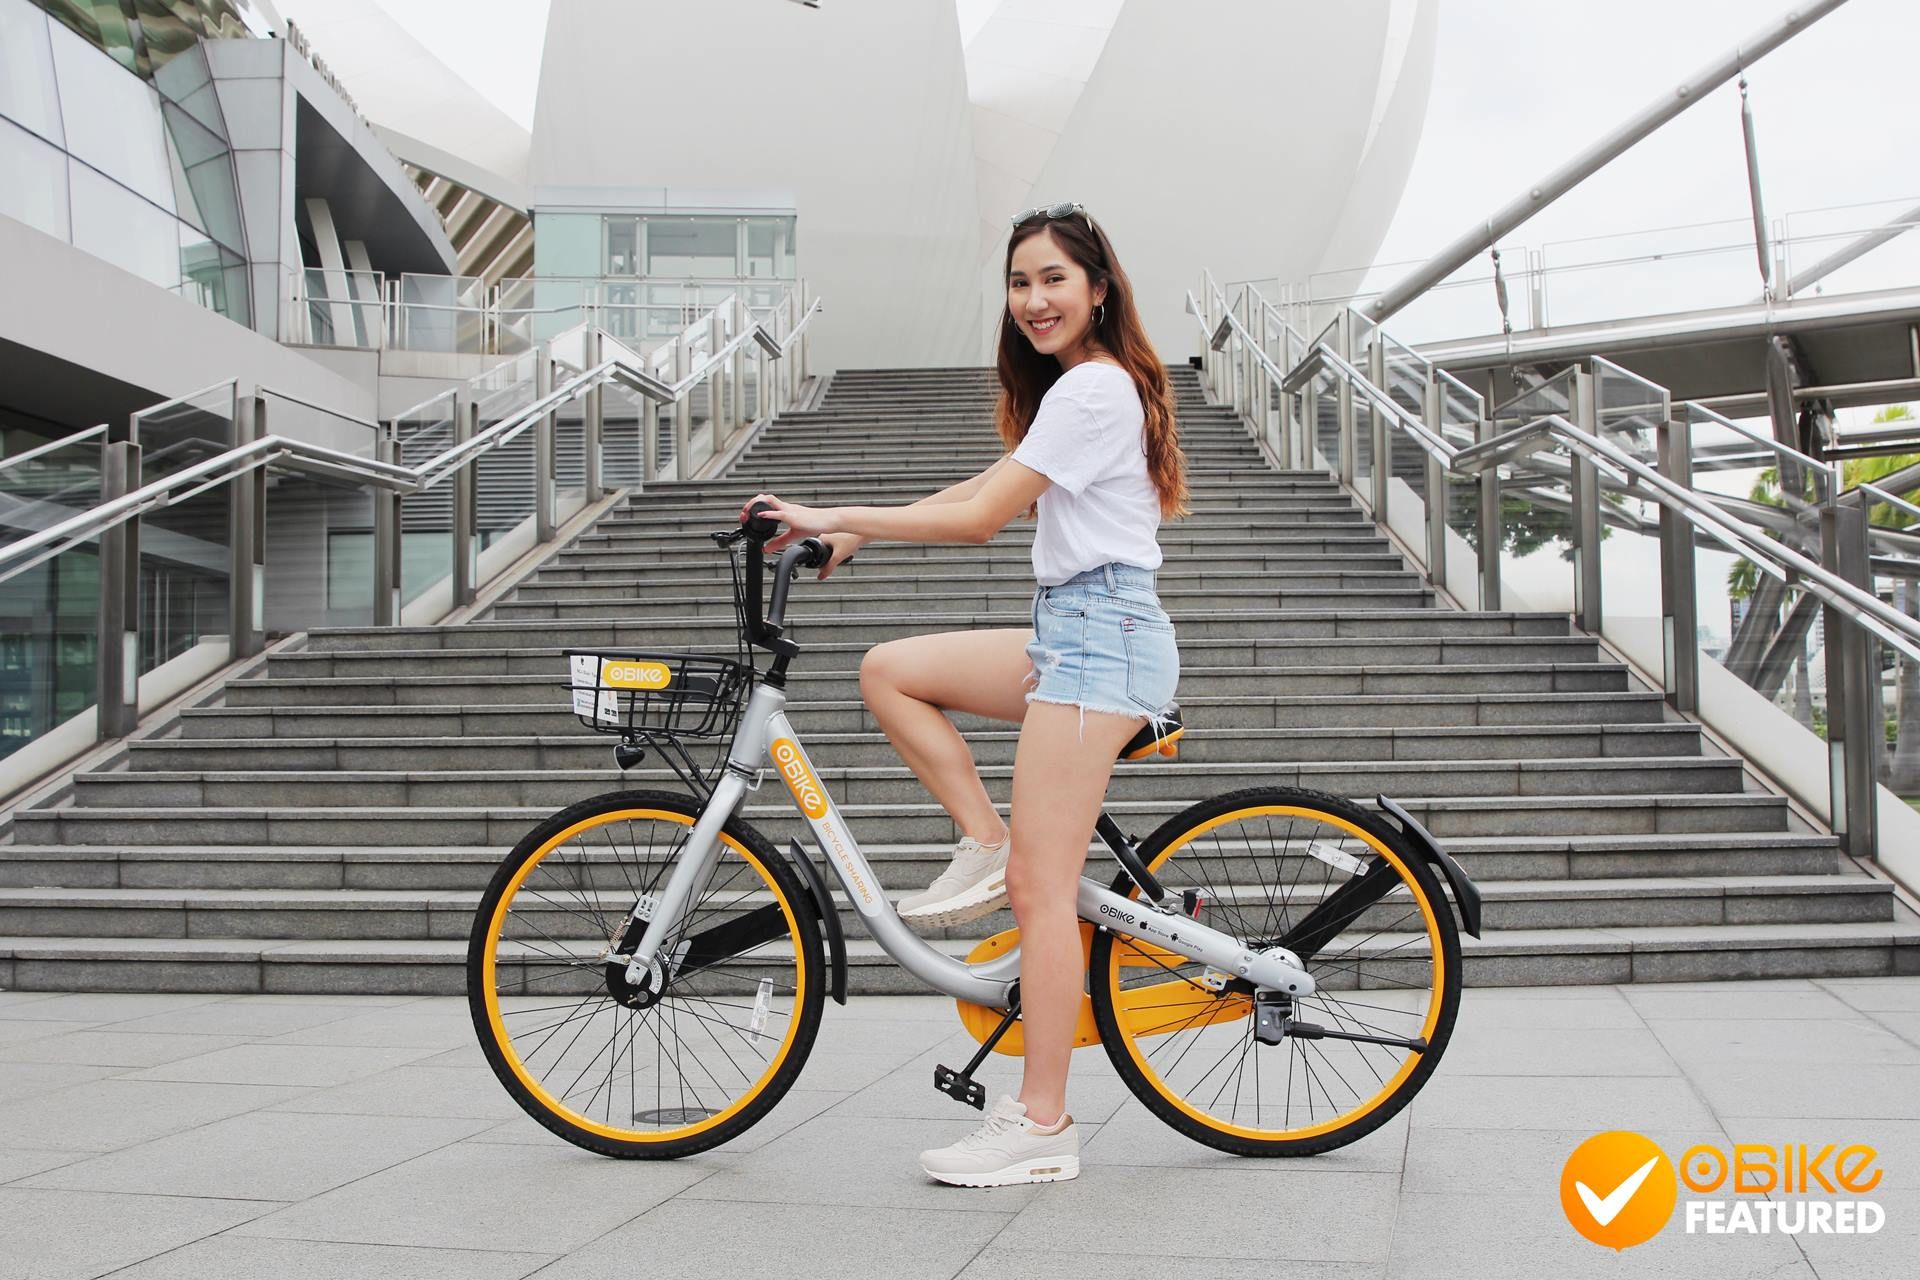 Photo courtesy: oBike